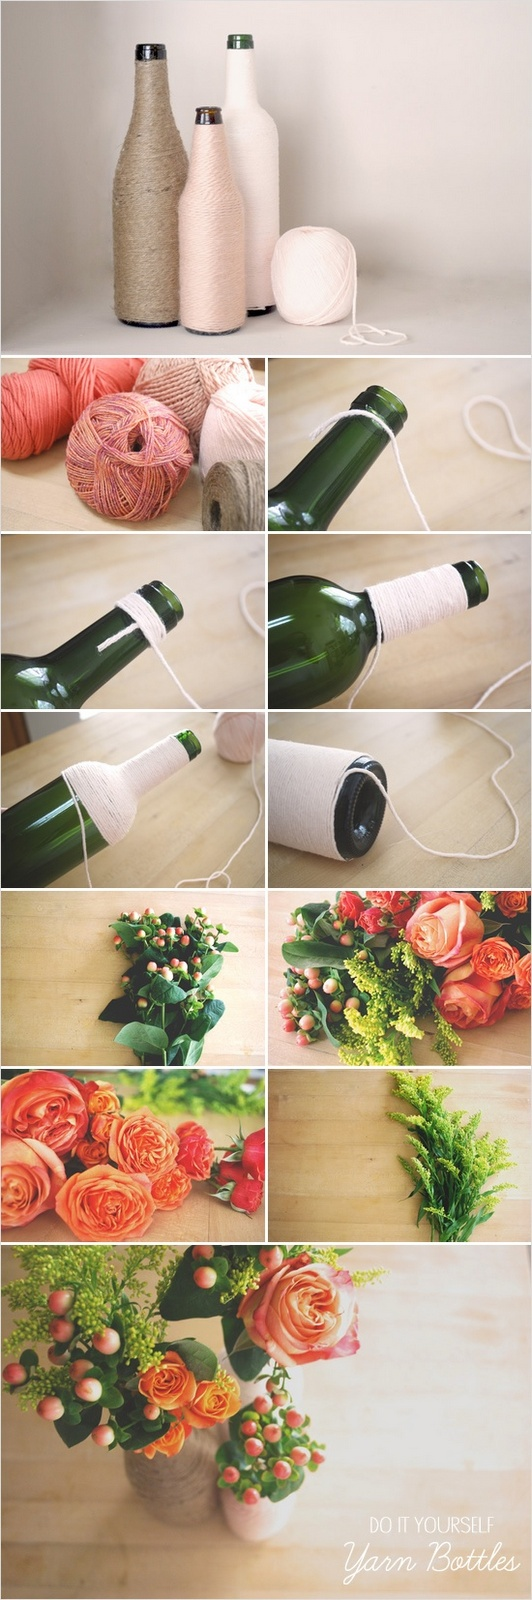 How to make beautiful bottles with wool